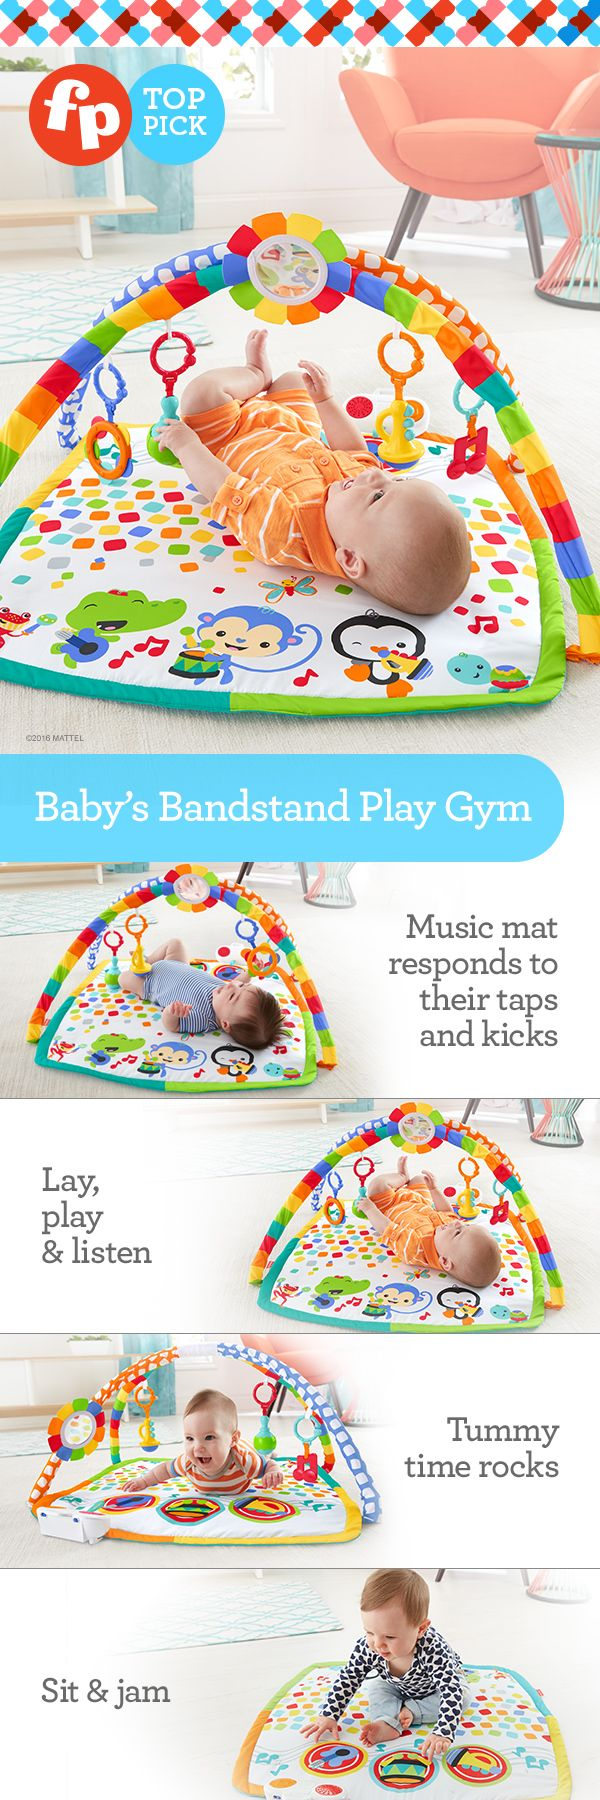 This gym rocks! The colorful mat responds to baby's taps & kicks with fun musical rewards!  The three instruments on the mat reward baby's touch with fun sounds, encouraging your wee one to push up, reach & bat. As your mini musician grows, remove the arches to let baby sit up and put on a musical show. Tots can even discover how to make the song grow by hitting the same instrument twice in a row!